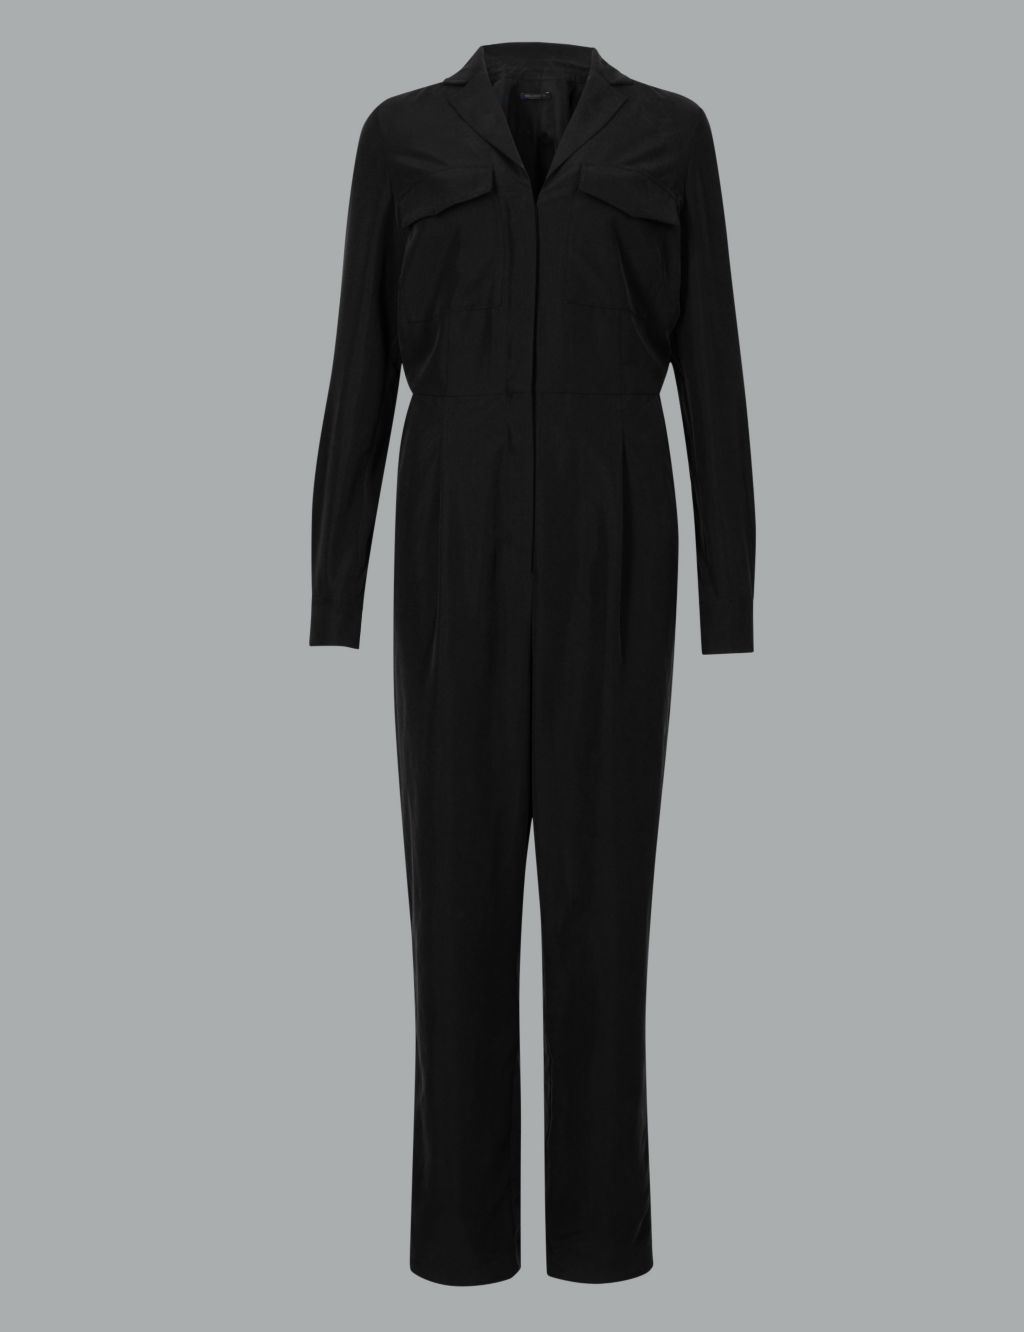 m&s autograph modal rich long sleeve maxi jumpsuit £89